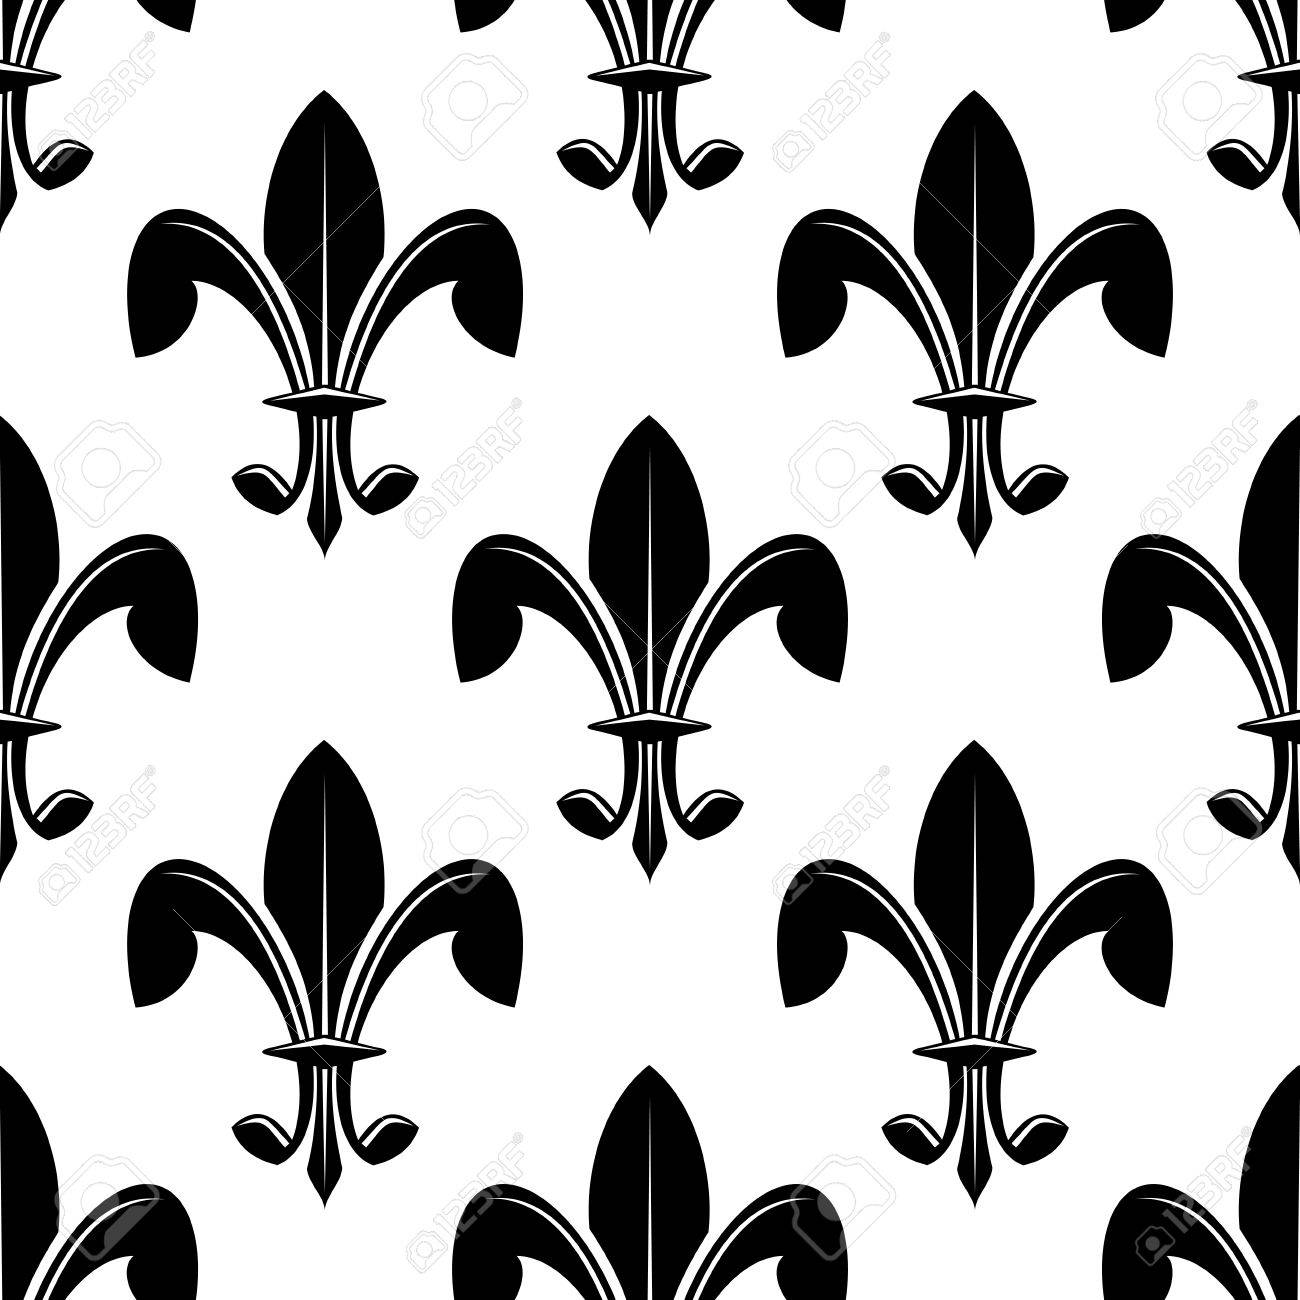 black and white seamless classic fleur de lys pattern suitable